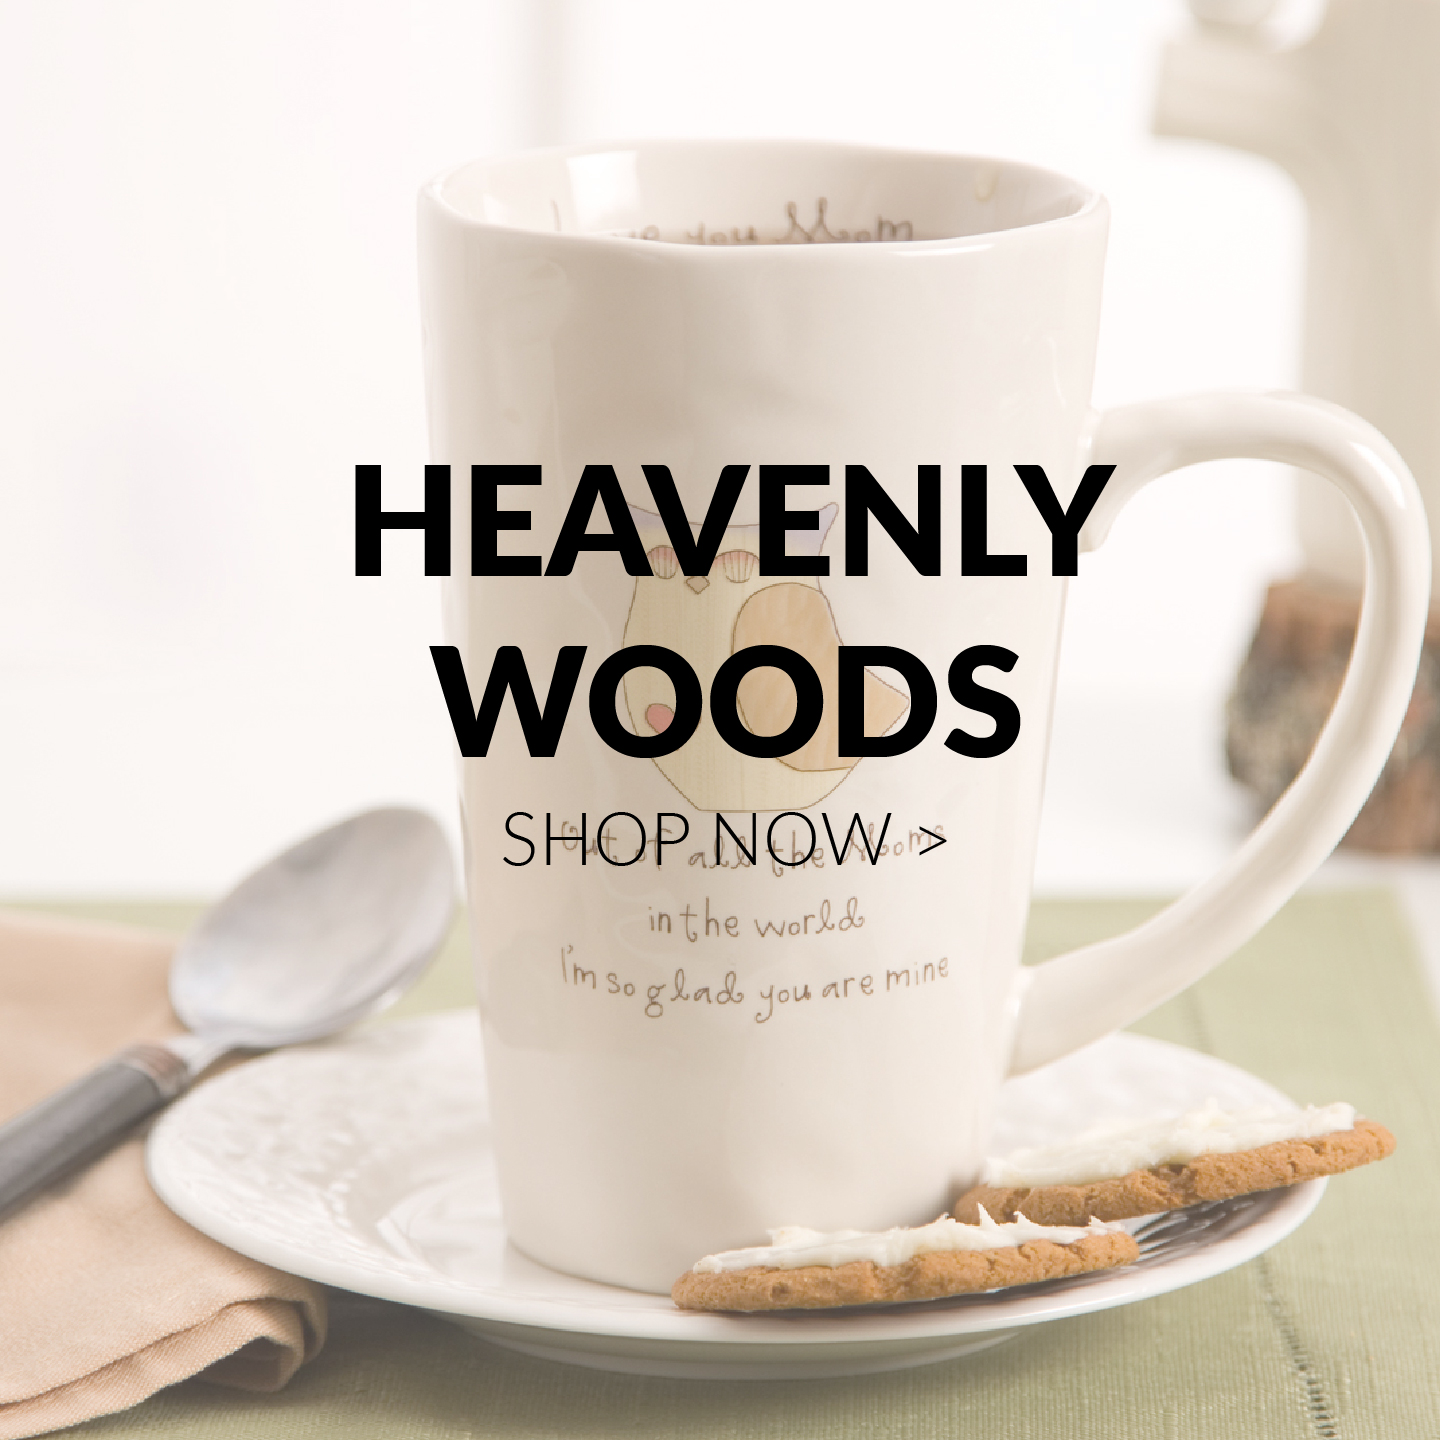 Heavenly Woods